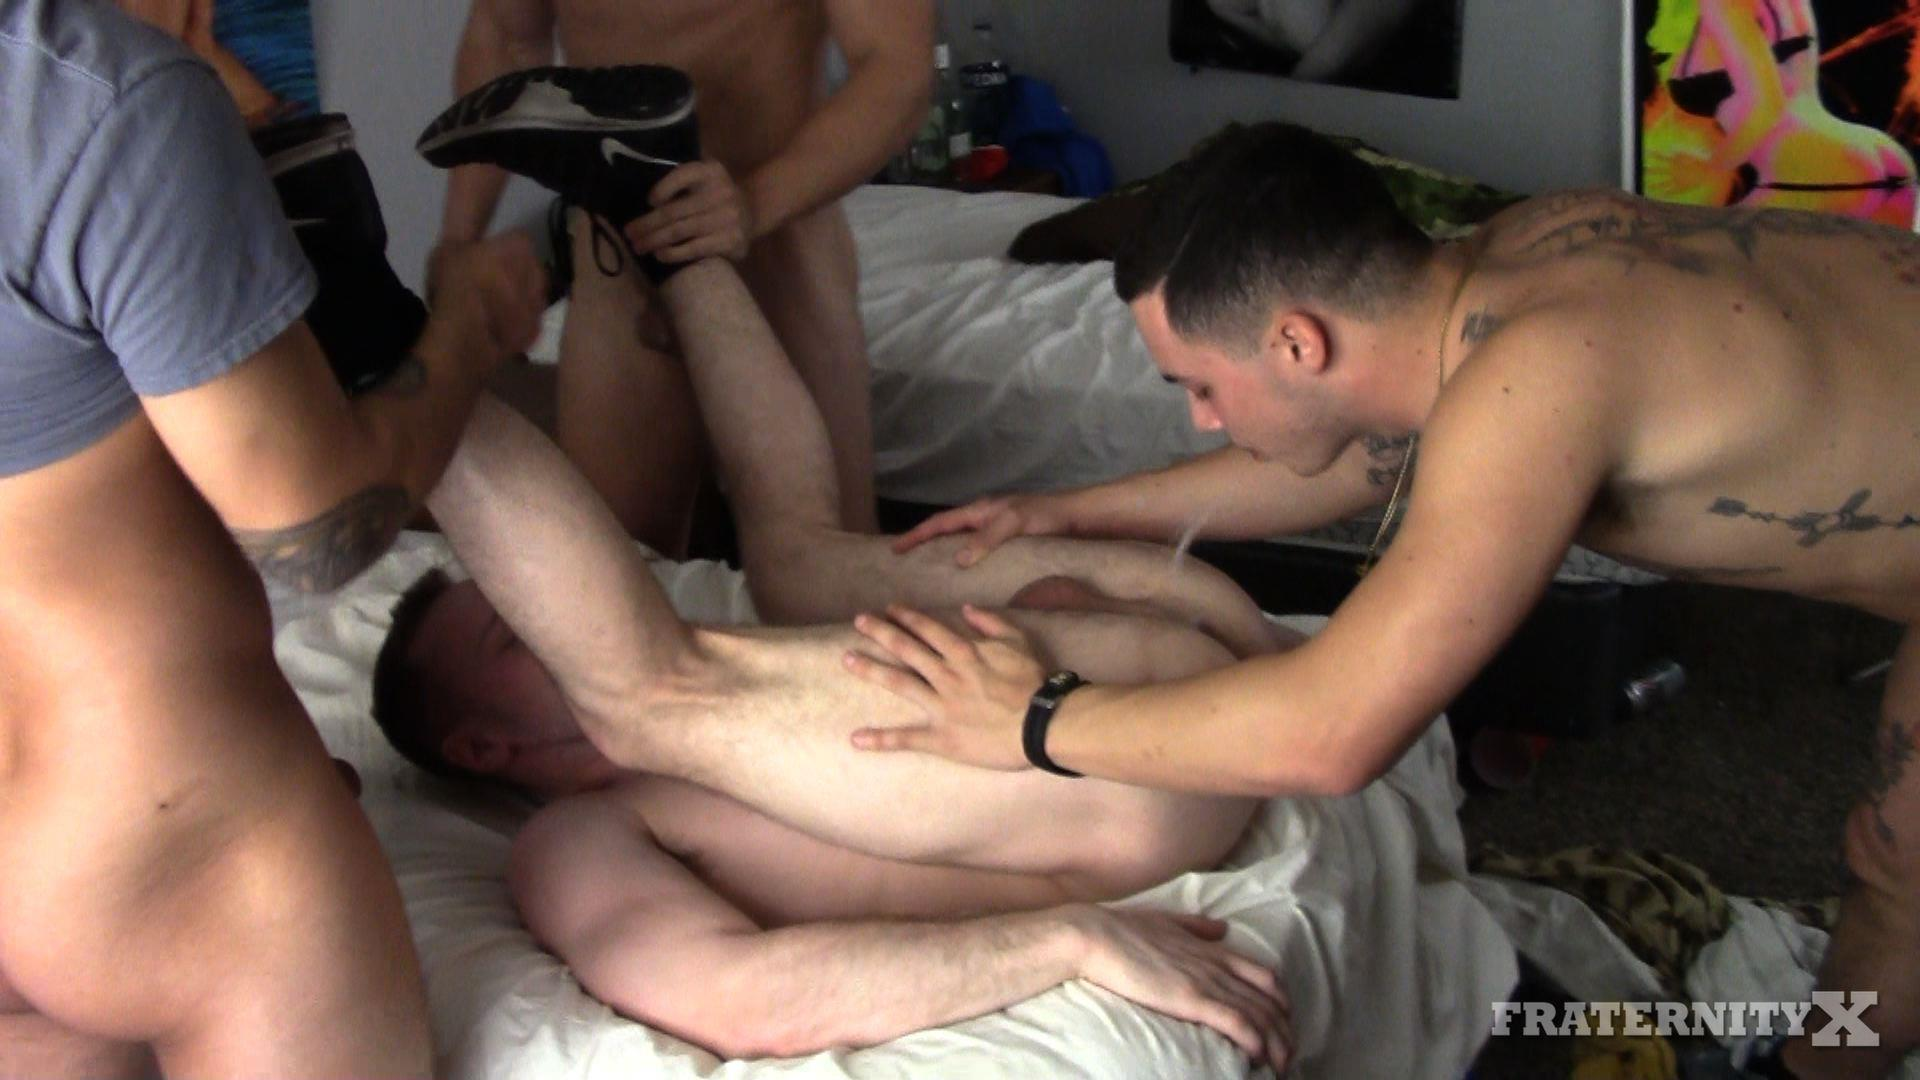 Fraternity-X-Naked-Frat-Guys-Bareback-Gay-Sex-Big-Dicks-07 Drunk Frat Boys Bareback Tag Team A Poor Freshman Ass